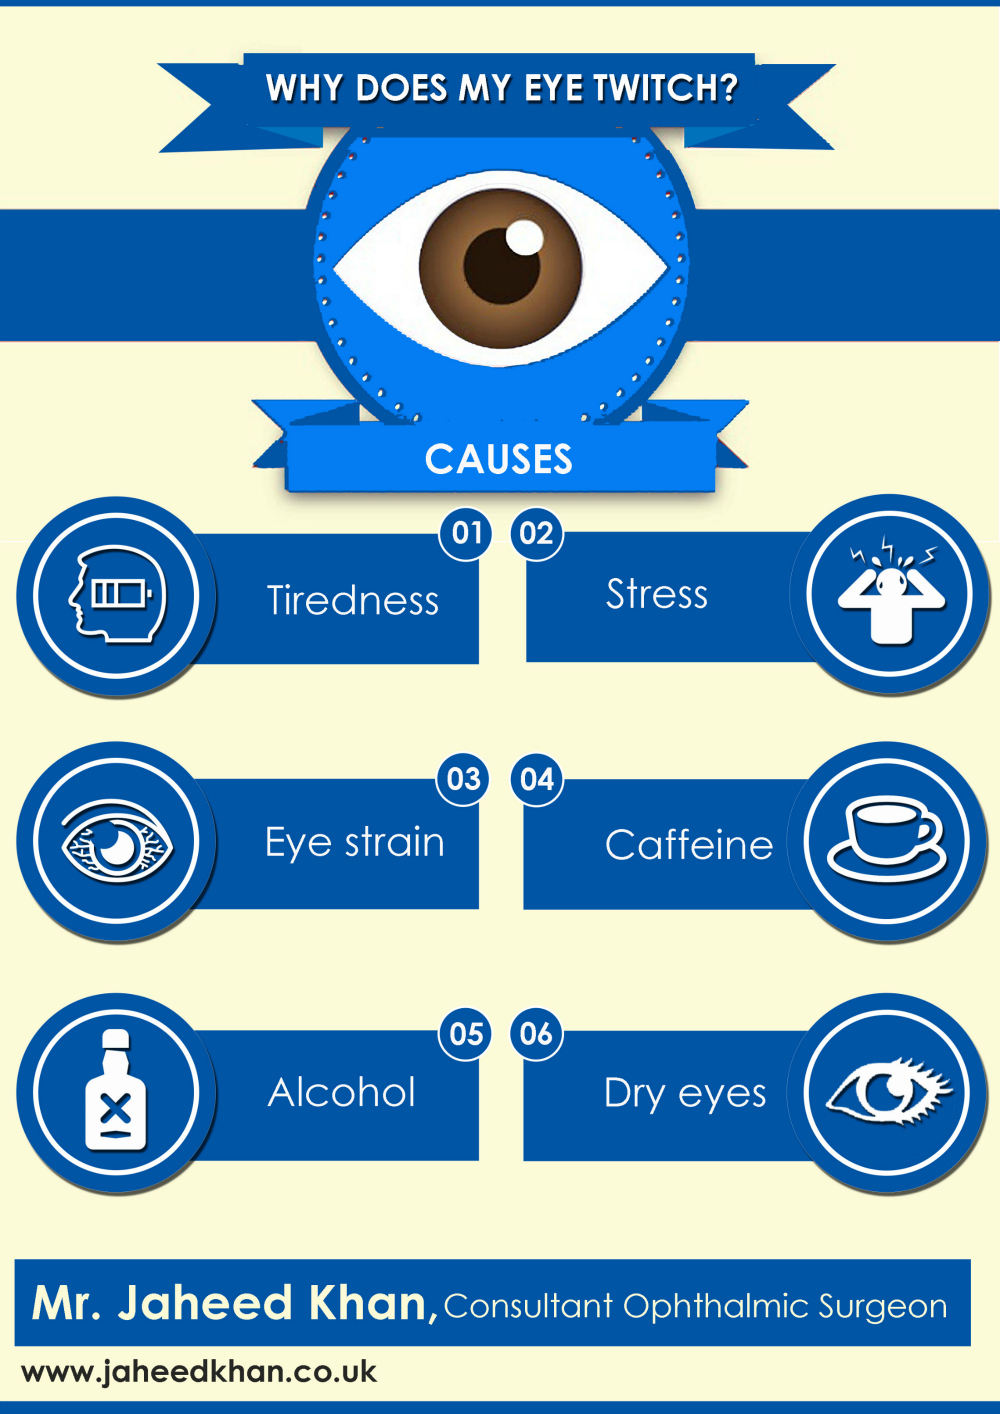 Why does my eye twitch infographic